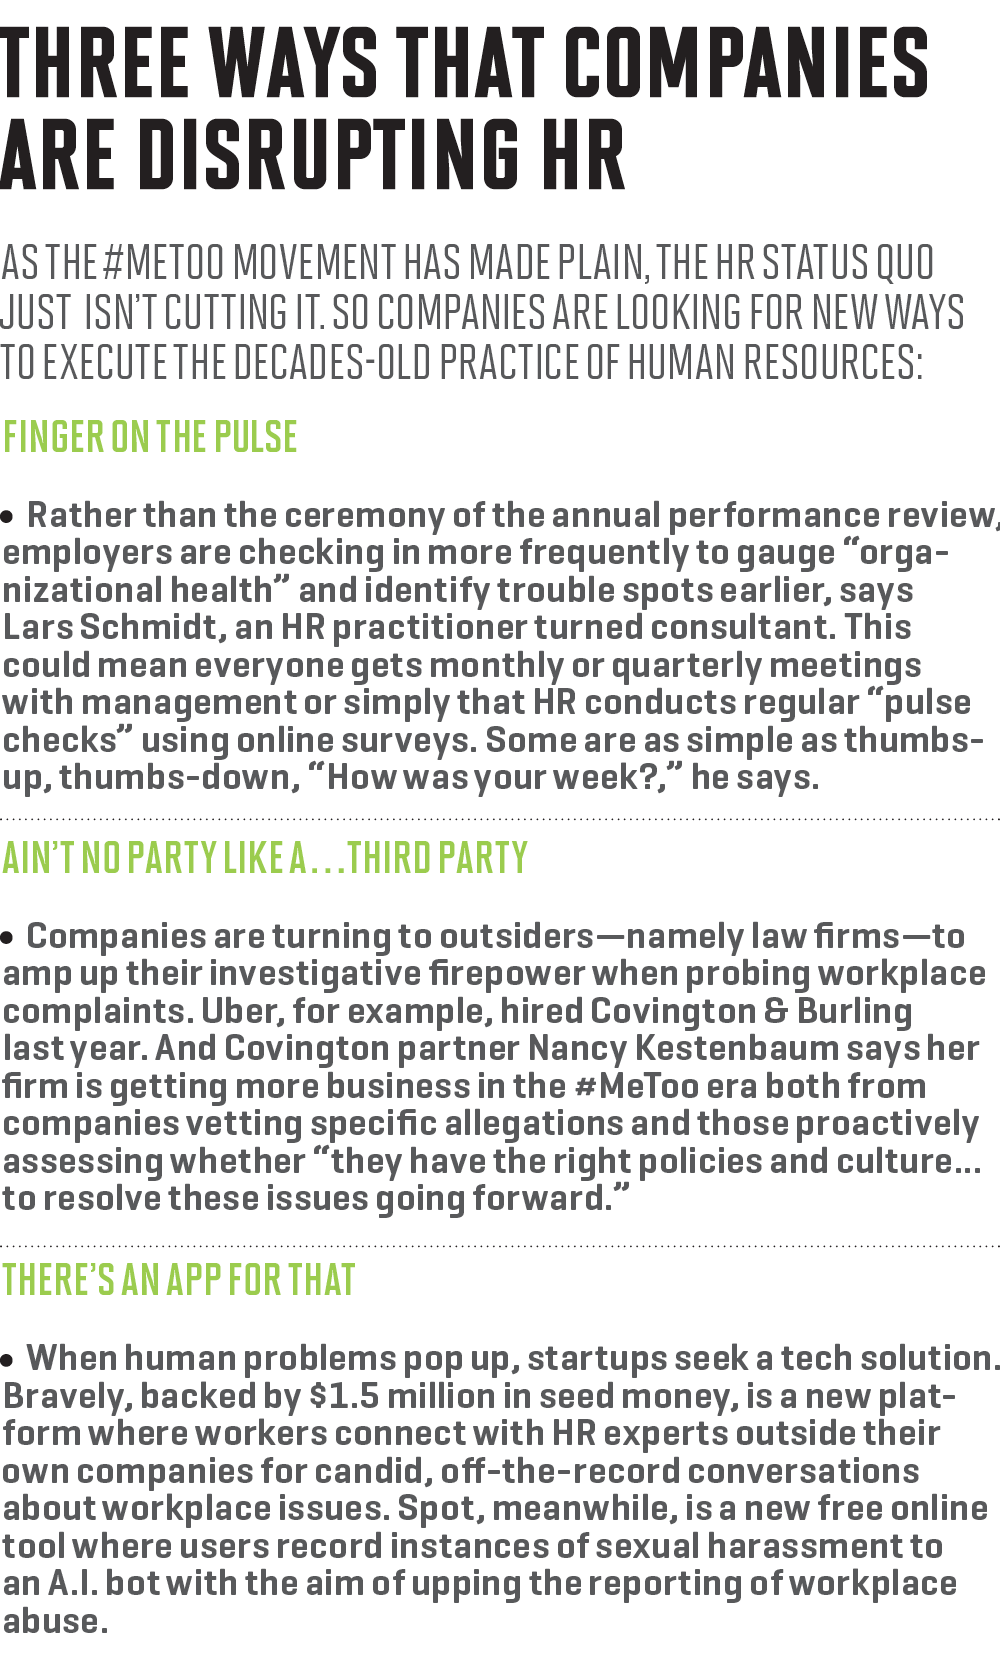 medium resolution of three ways companies are disrupting hr